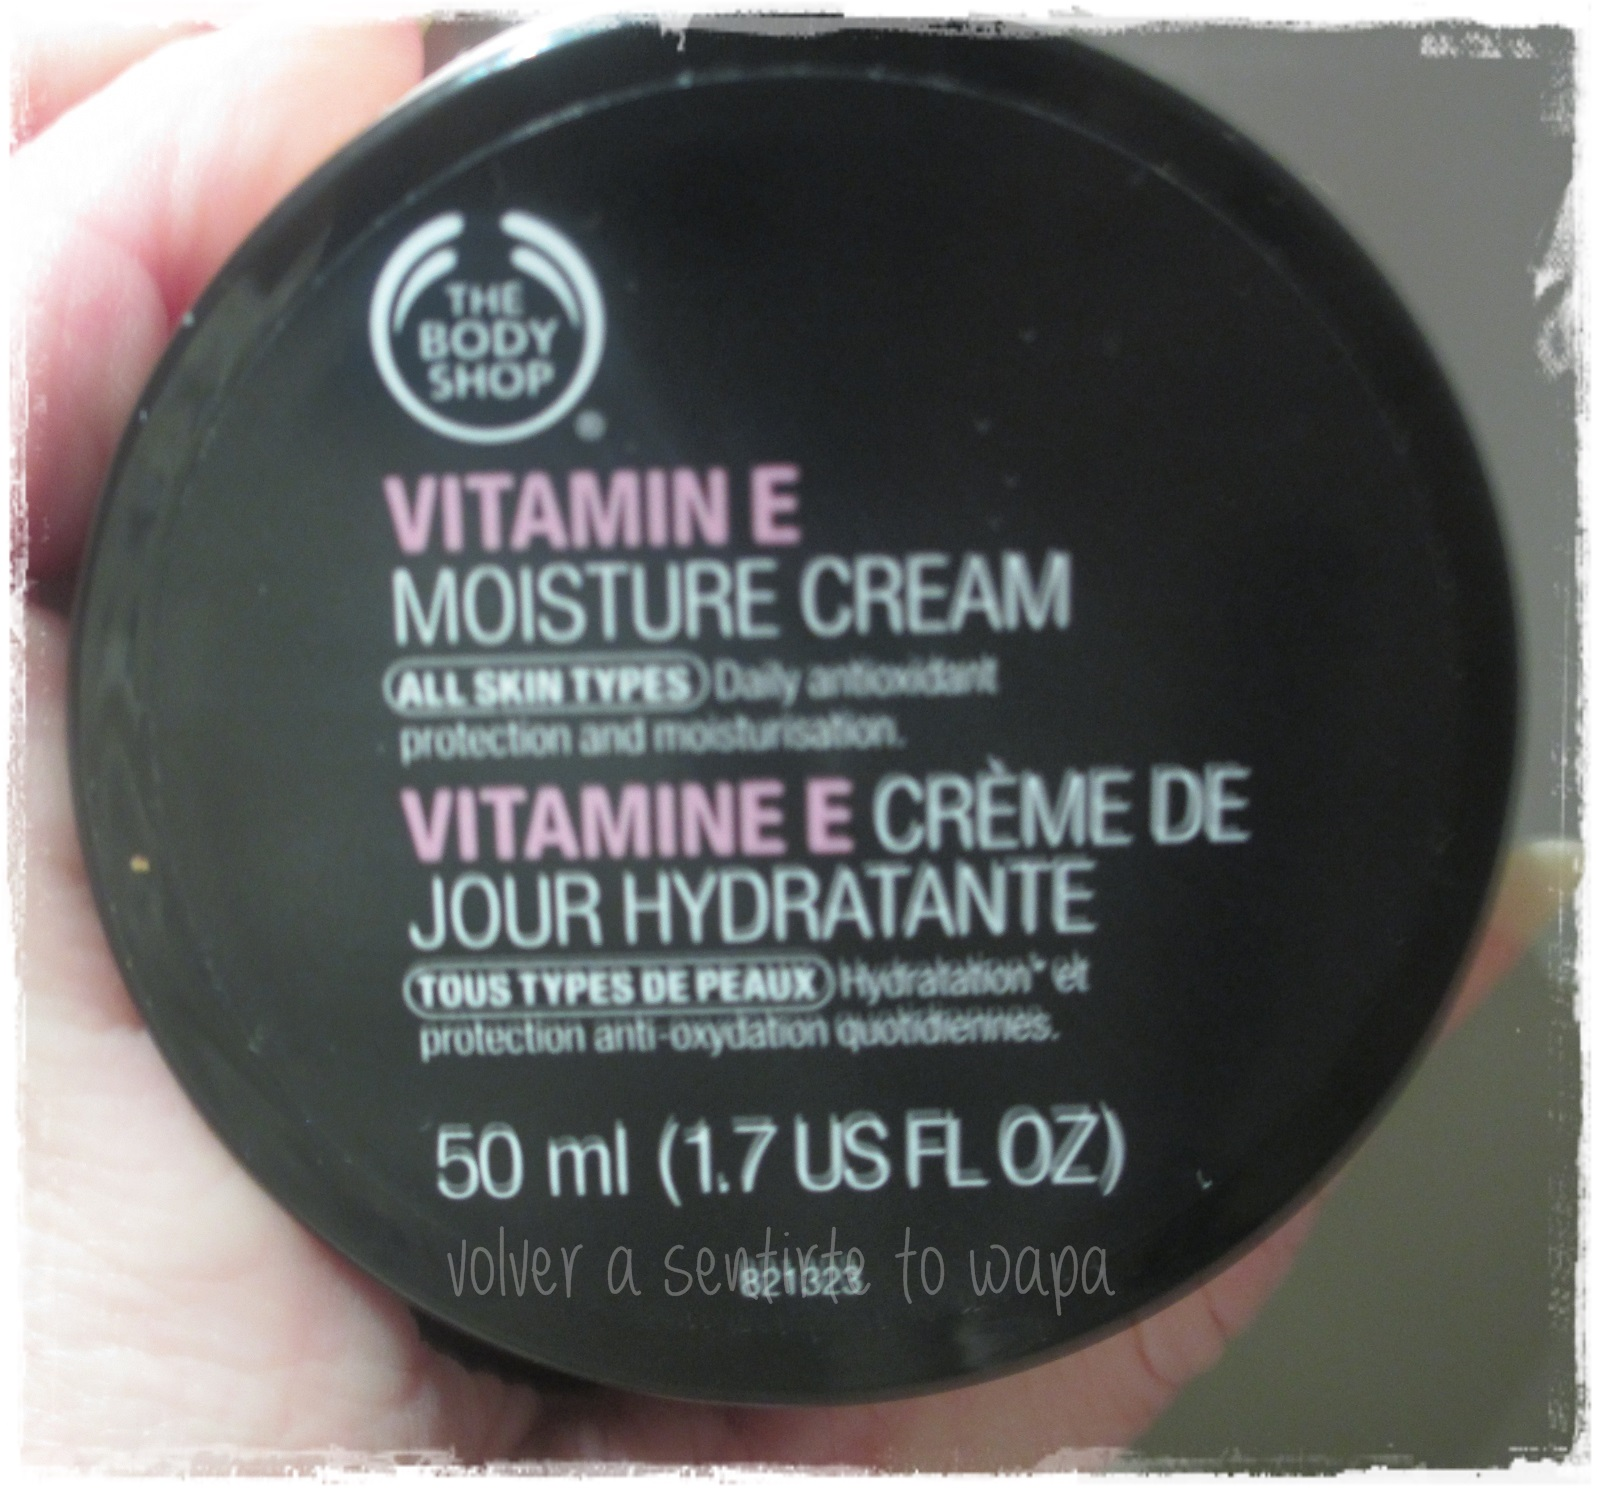 Crema Facial de Vitamina E de THE BODY SHOP